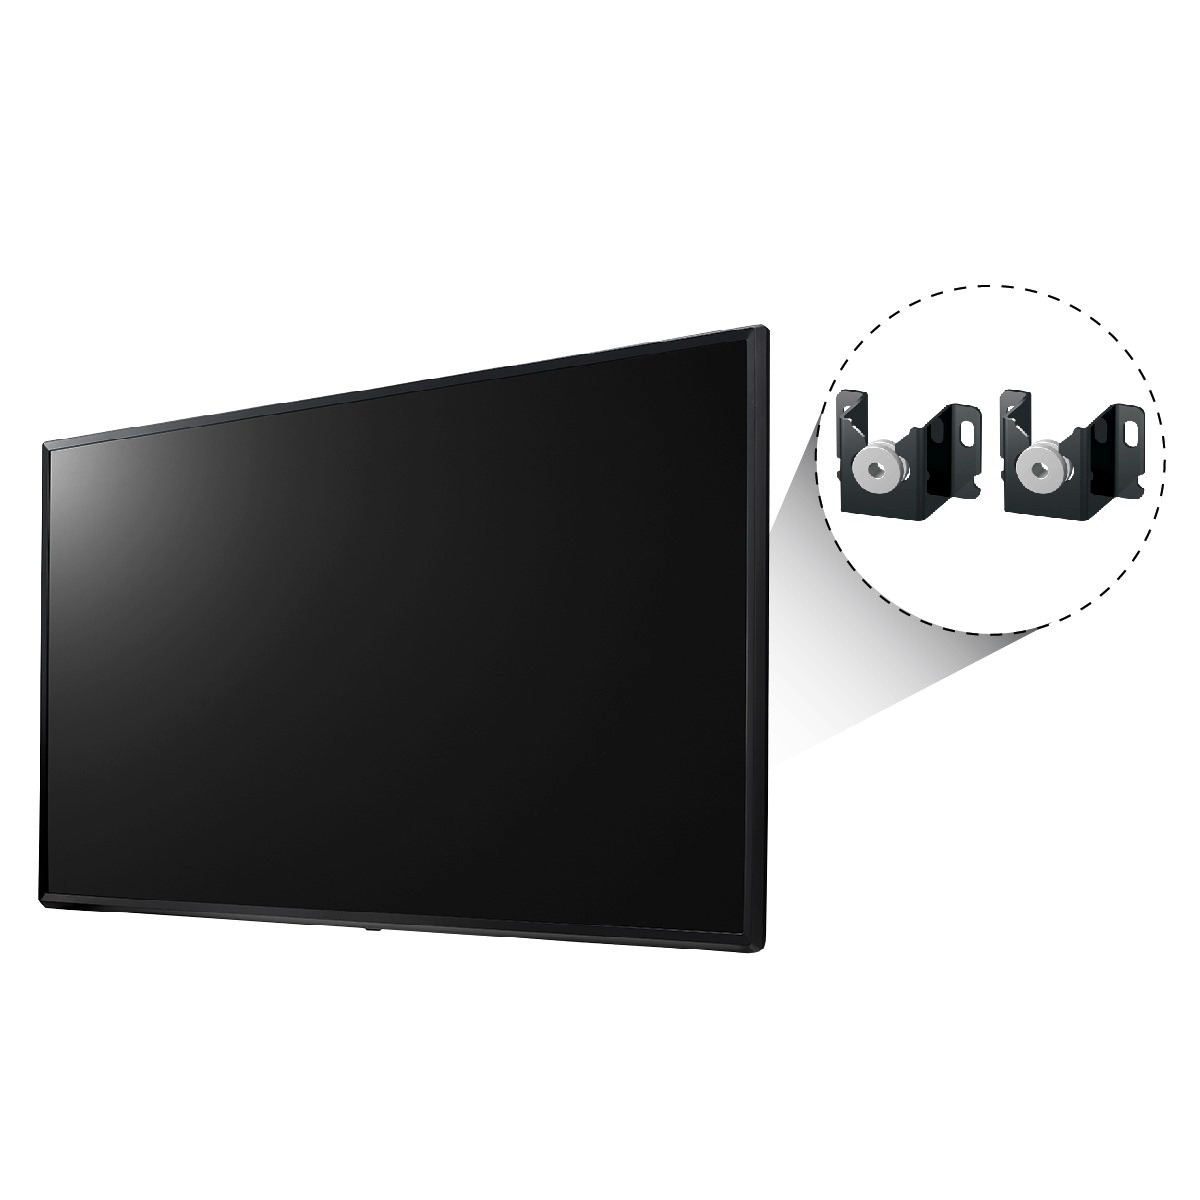 c651d765a Smart Tv Led 32 Hd Samsung Netflix Youtube Suporte Parede - R  1.133 ...